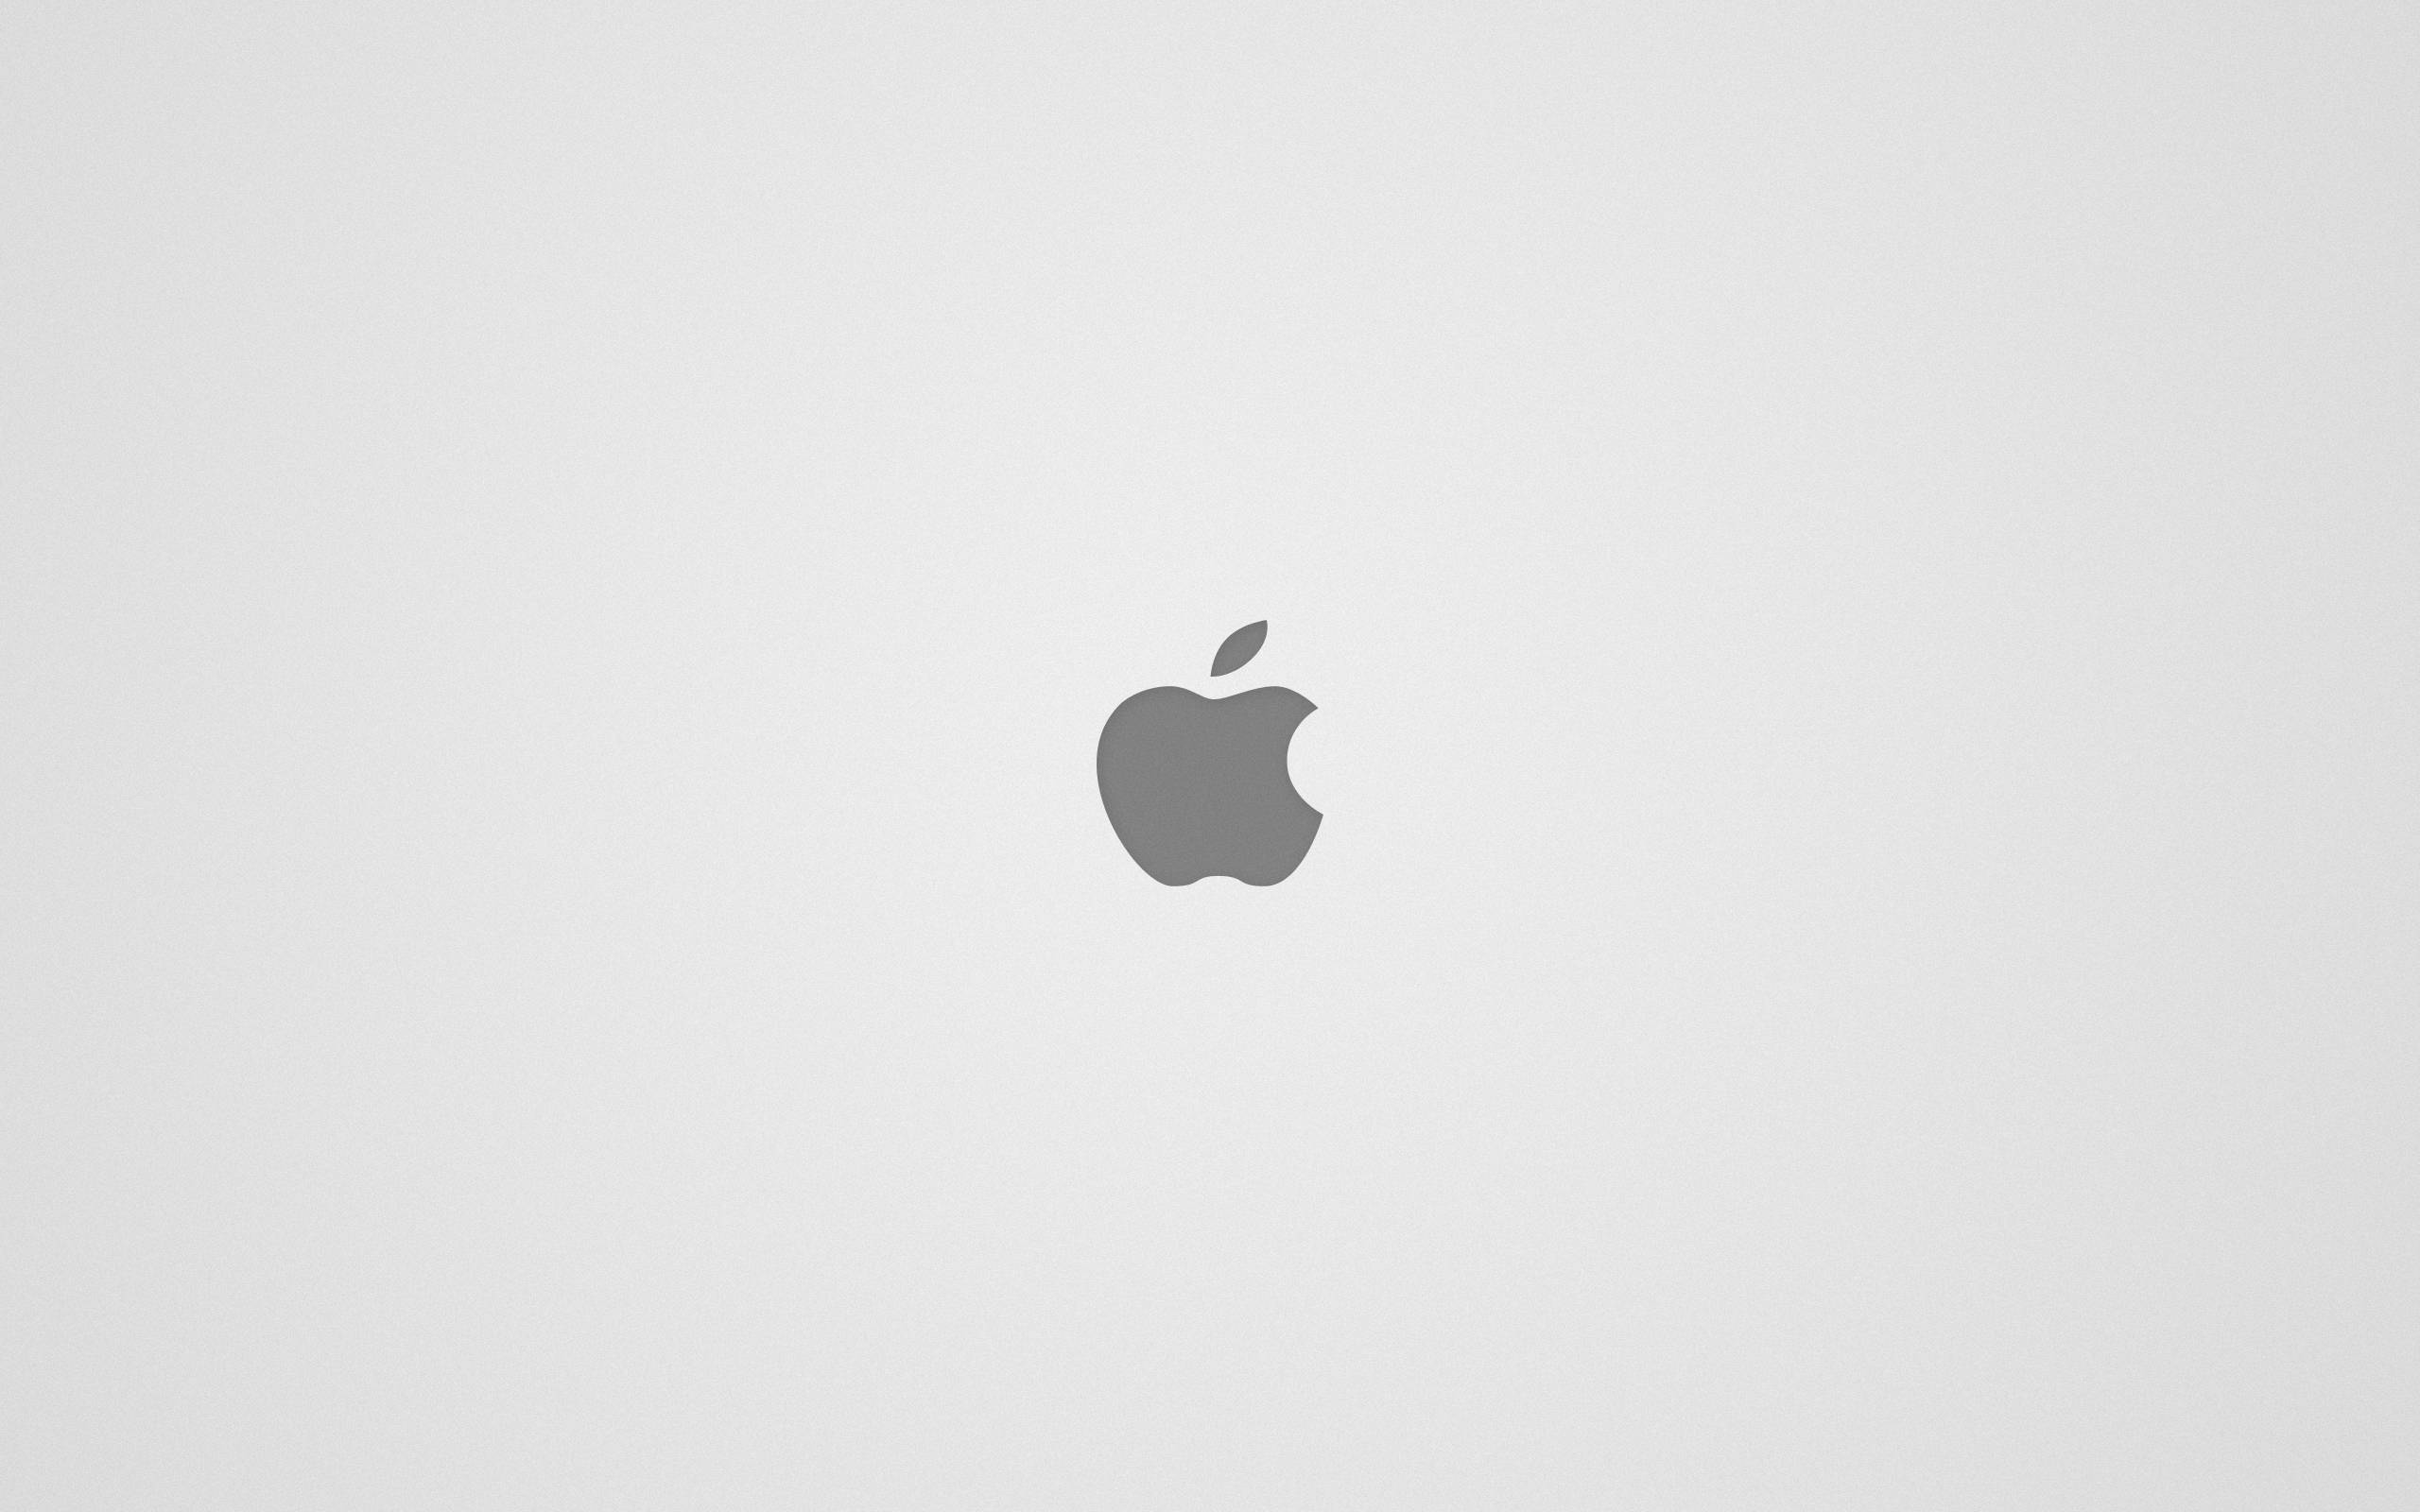 HD Apple Wallpapers White